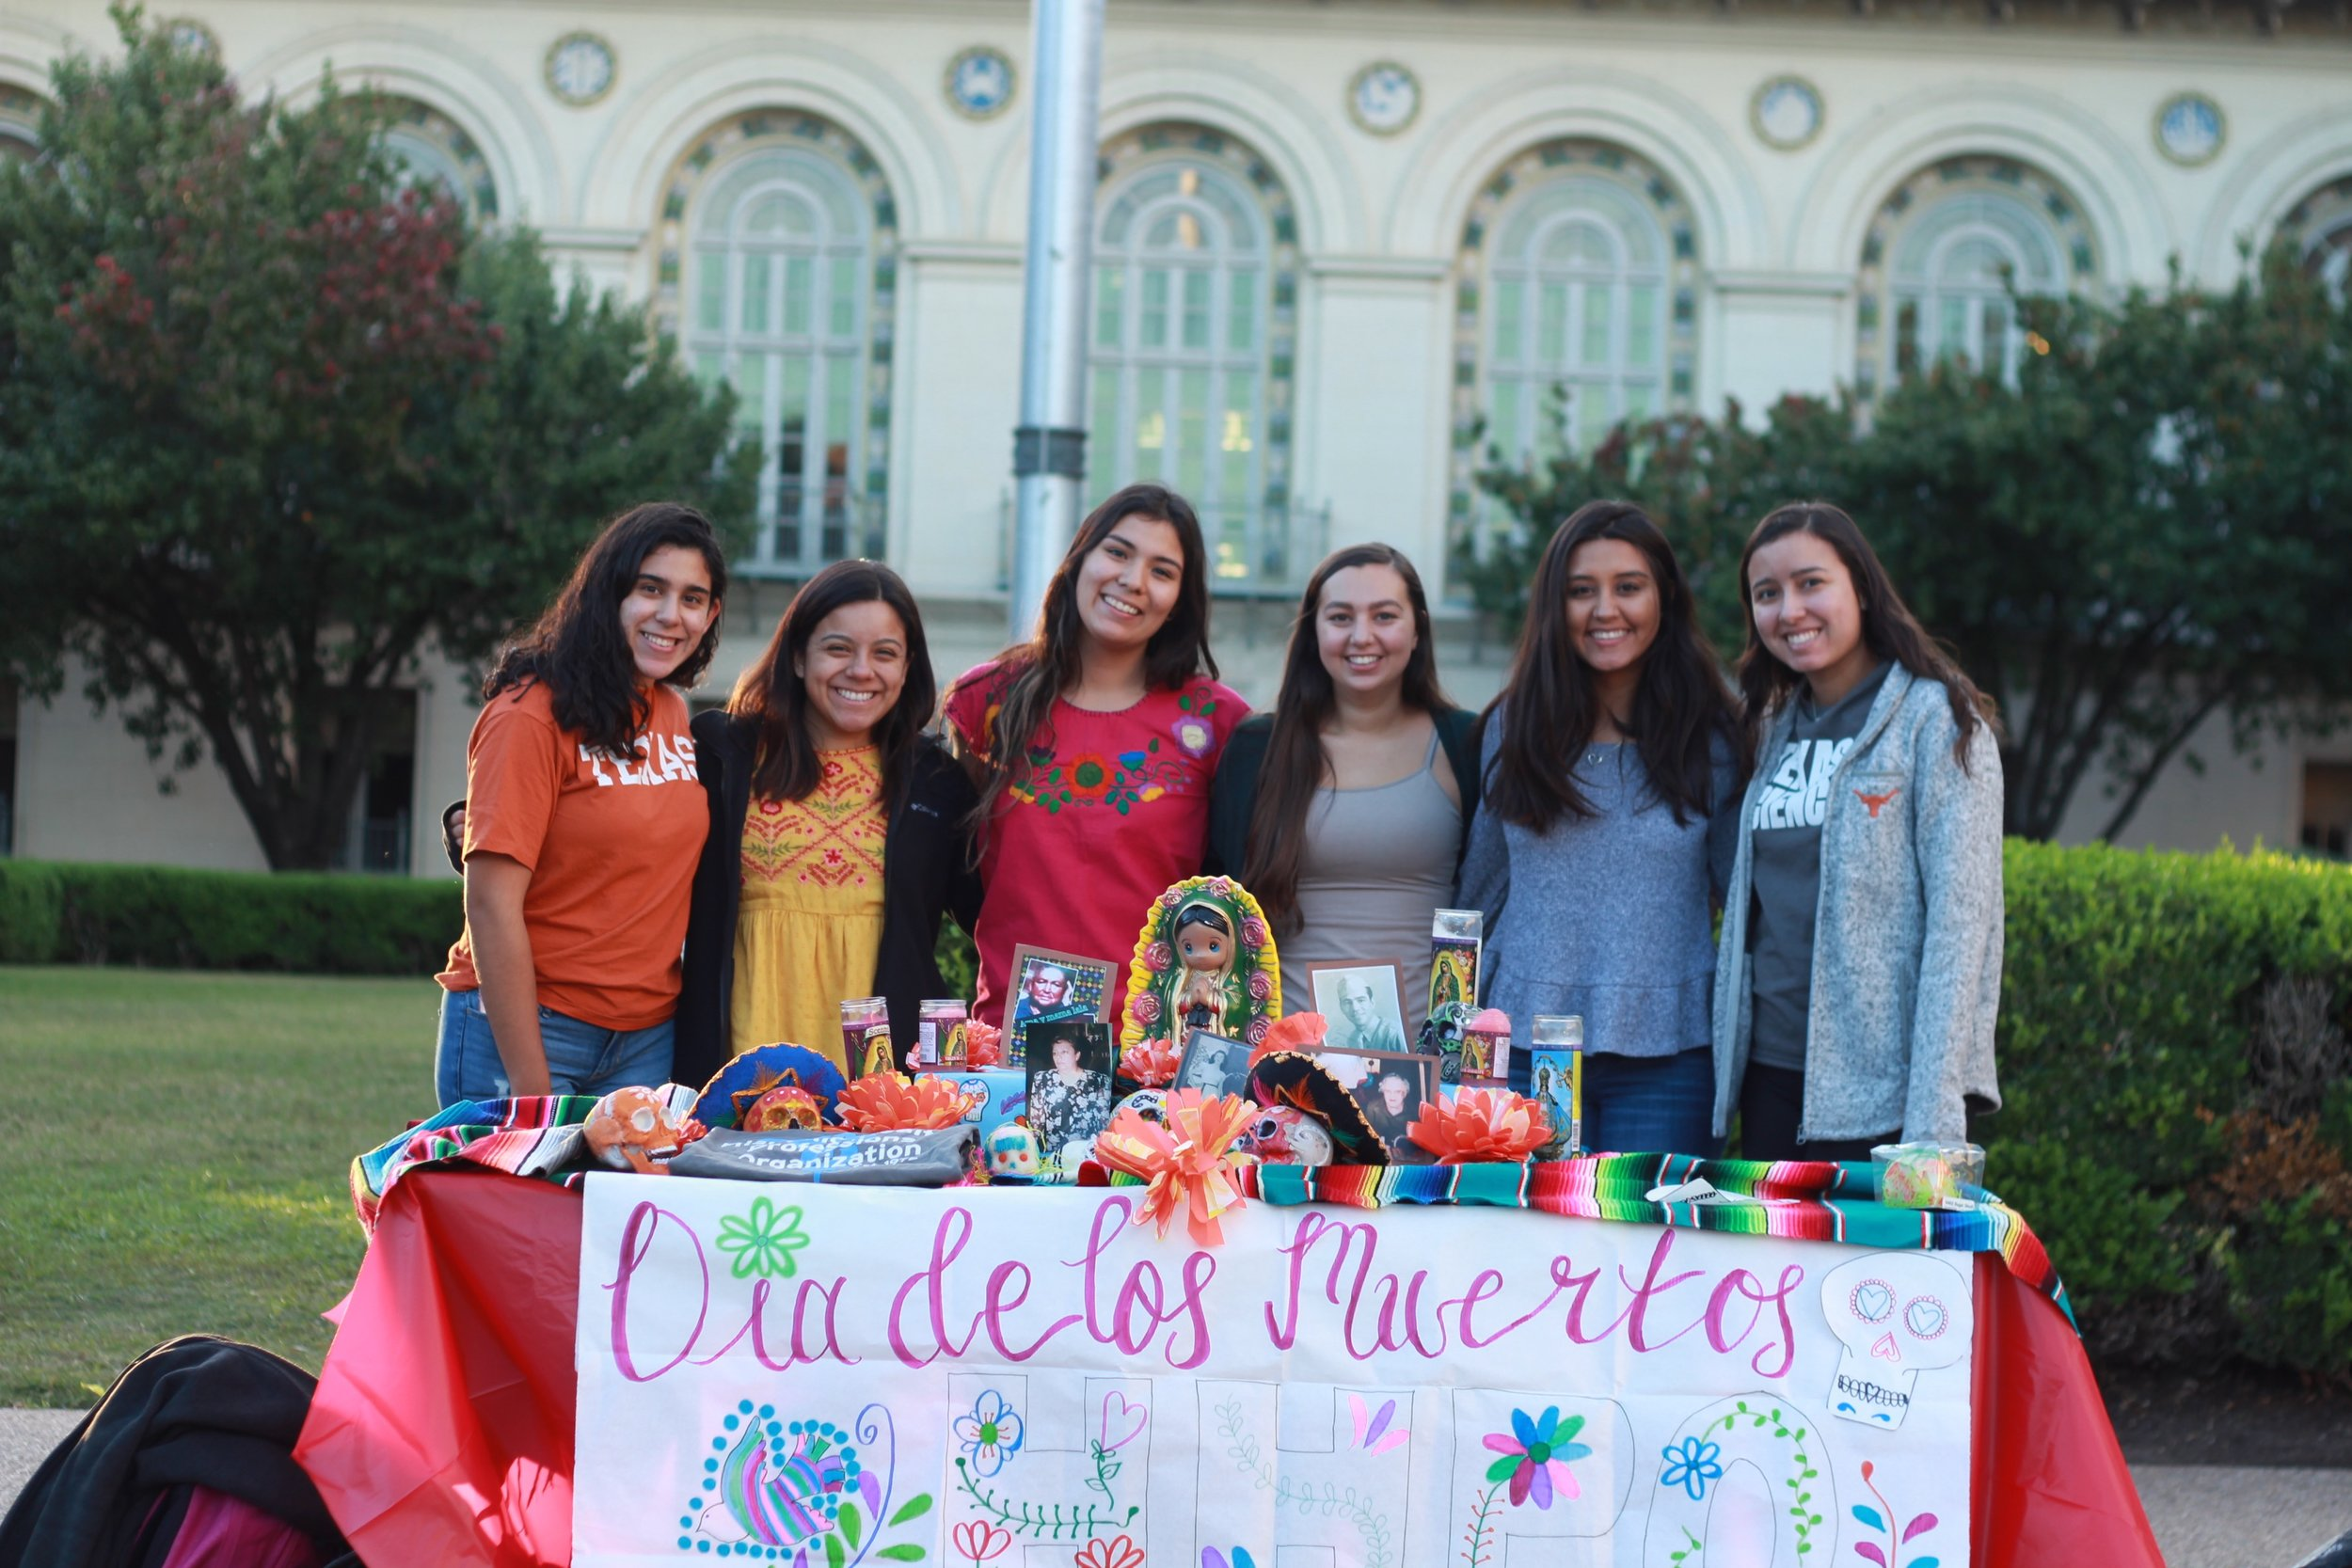 Vianey Jauregui, Alicia, Andrea Martinez, Alyssa Victoria Garza, Alejandra Lozano, and Emily Cardona, are members of a Latinx pre-health organization. They believe it is important to represent minorities in the medical field, and overcome cultural barriers in order to serve their community.